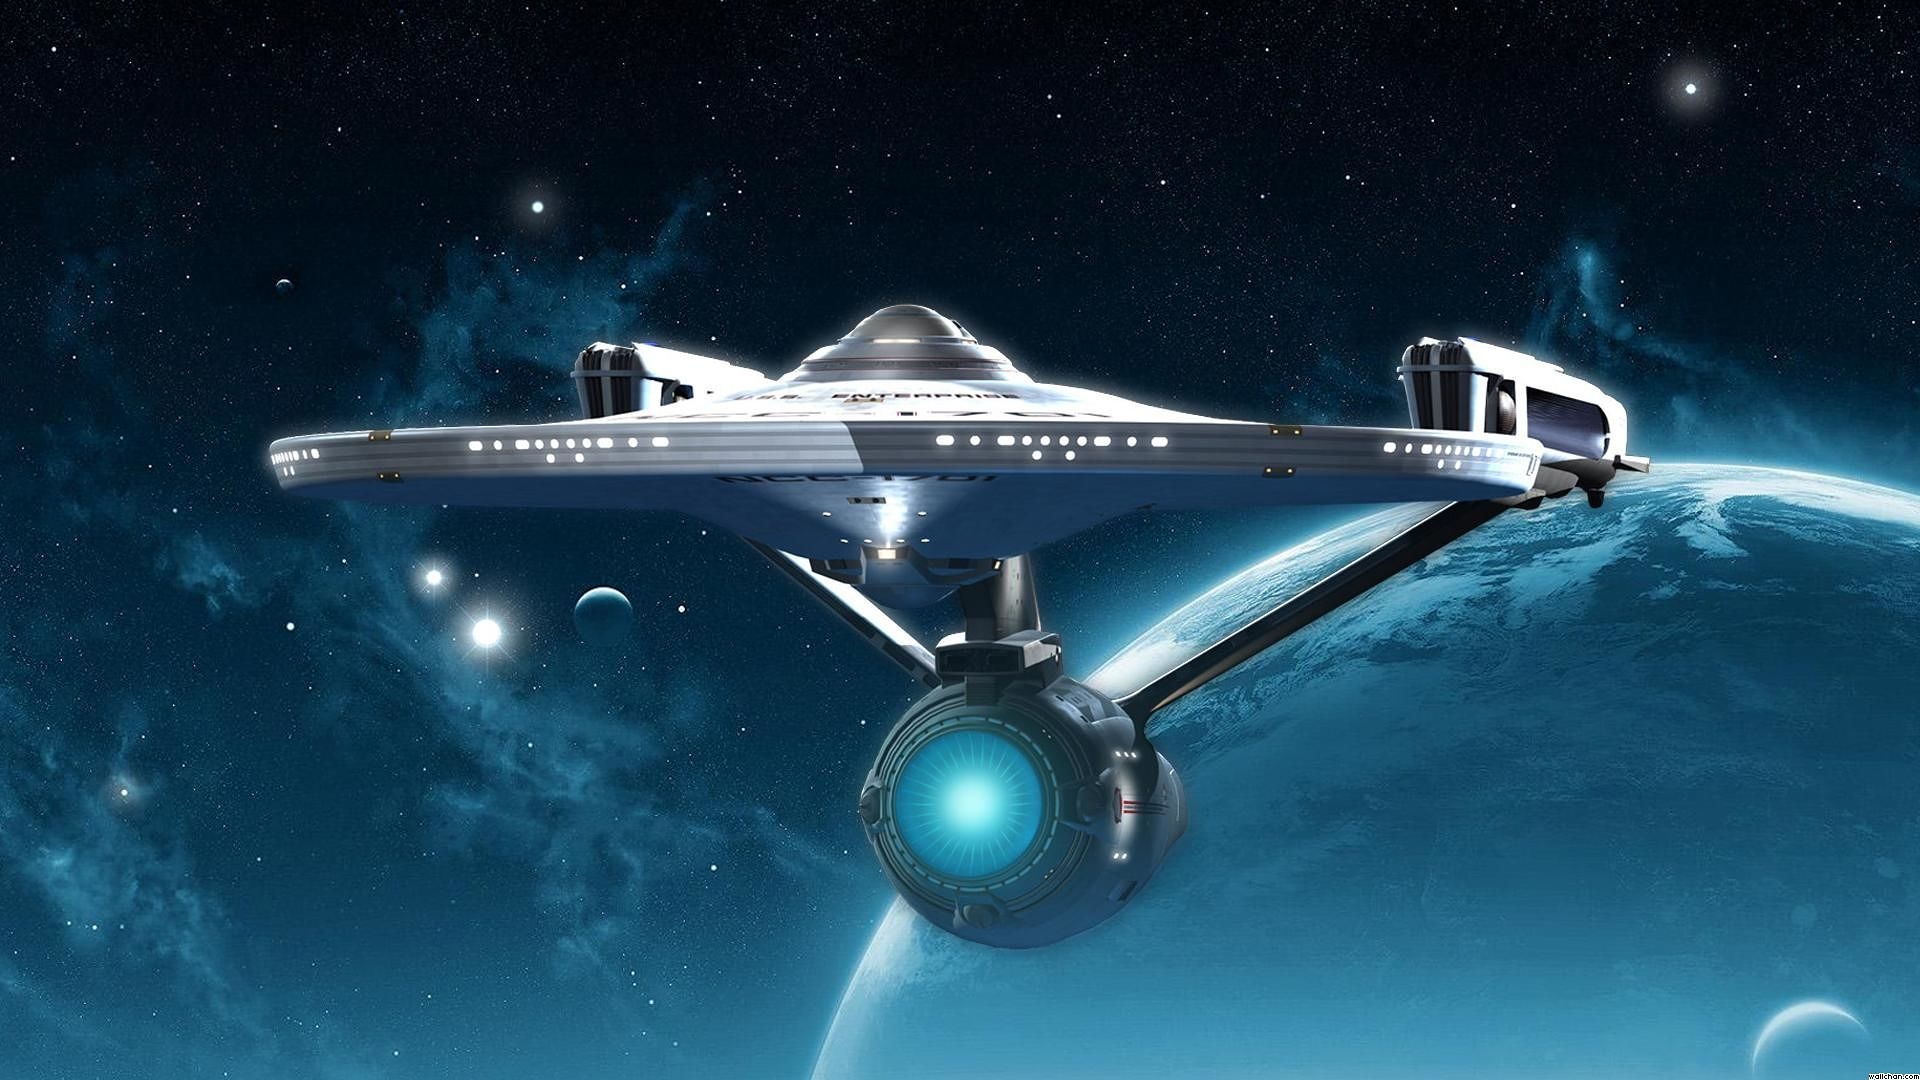 Star Trek HD wallpapers, Desktop wallpaper - most viewed